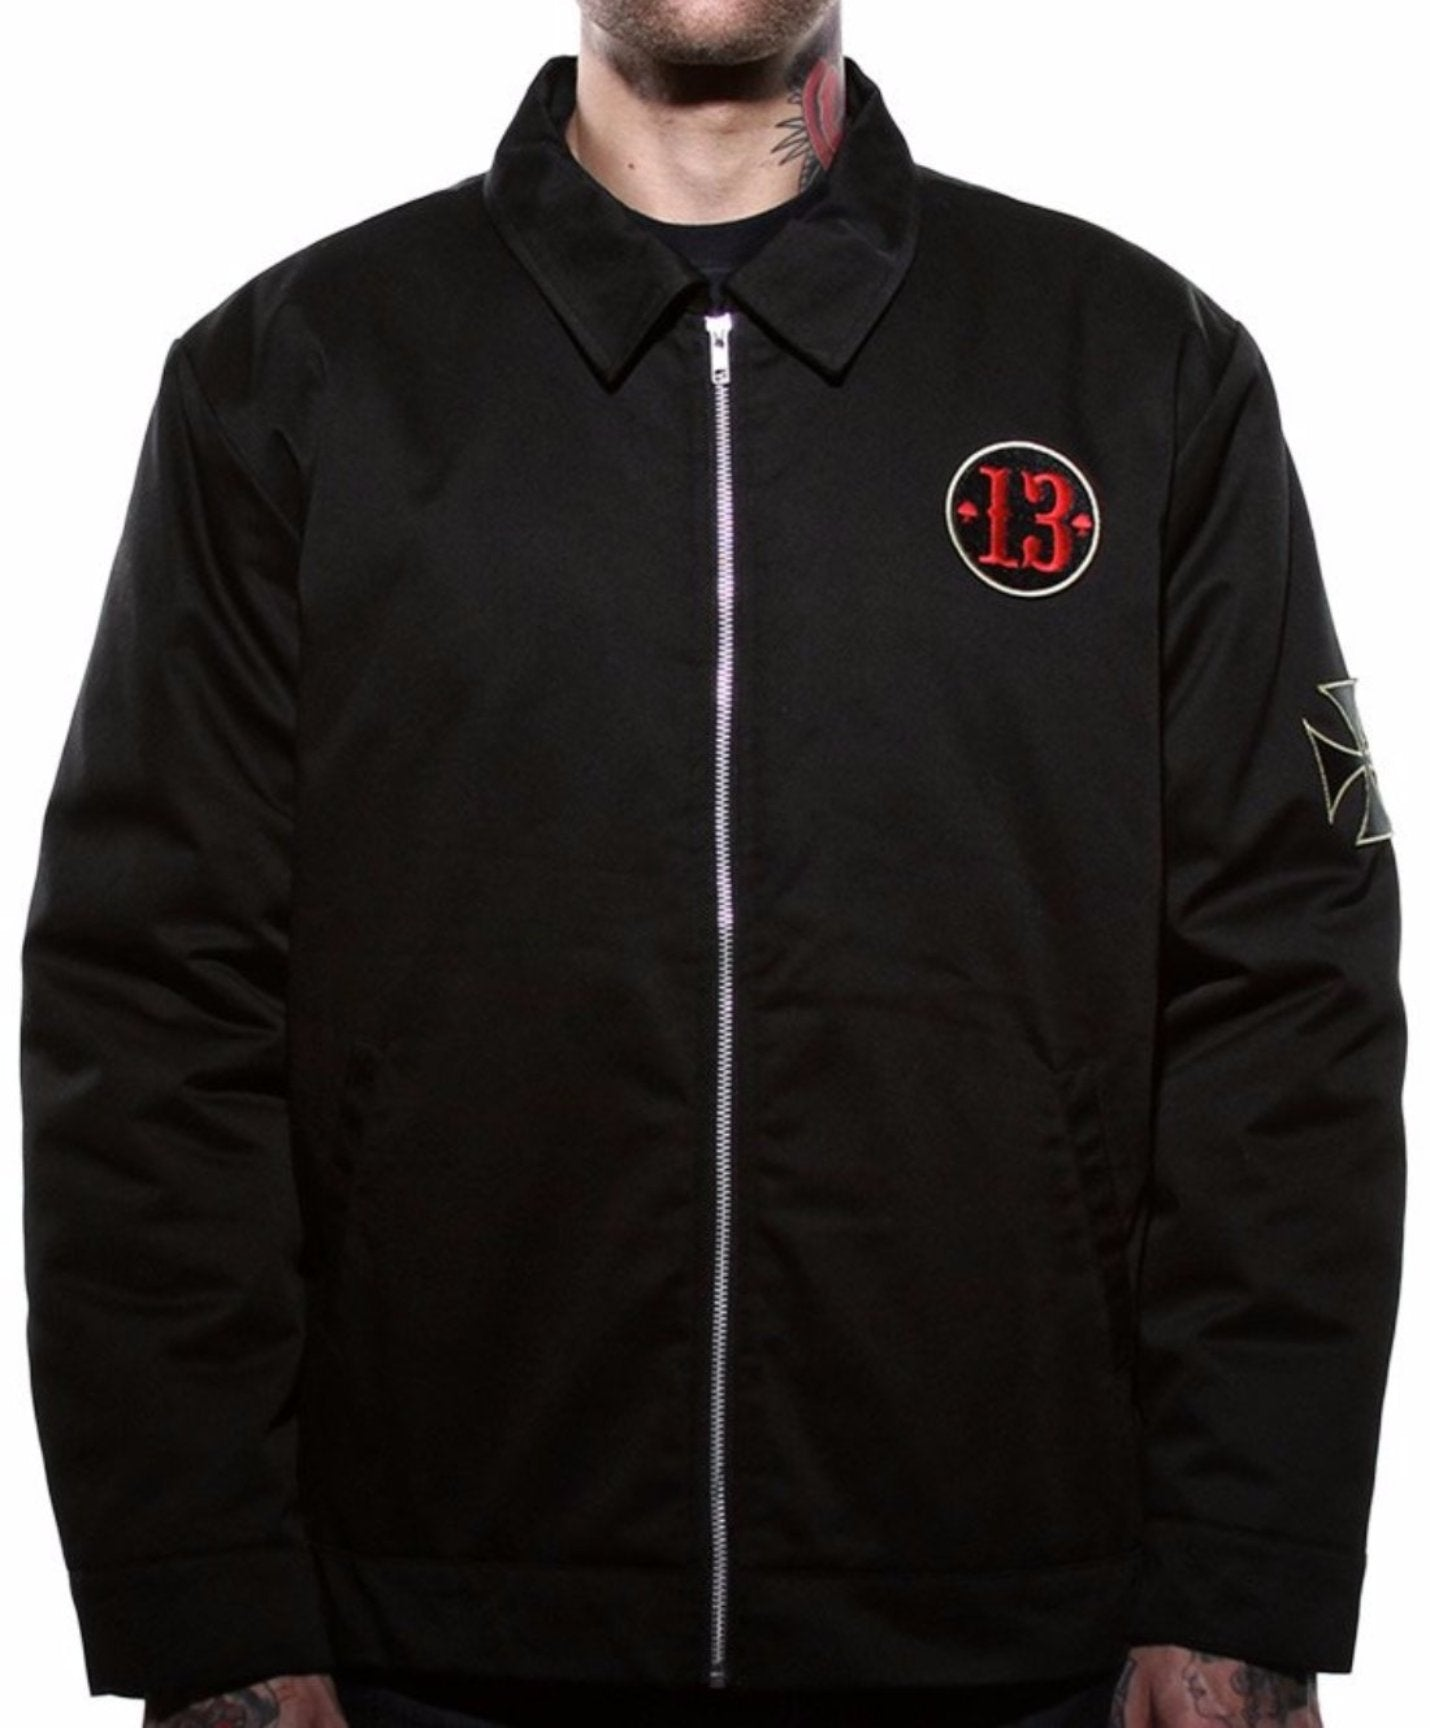 The BORN TO LOSE Jacket - FREE SHIPPING!